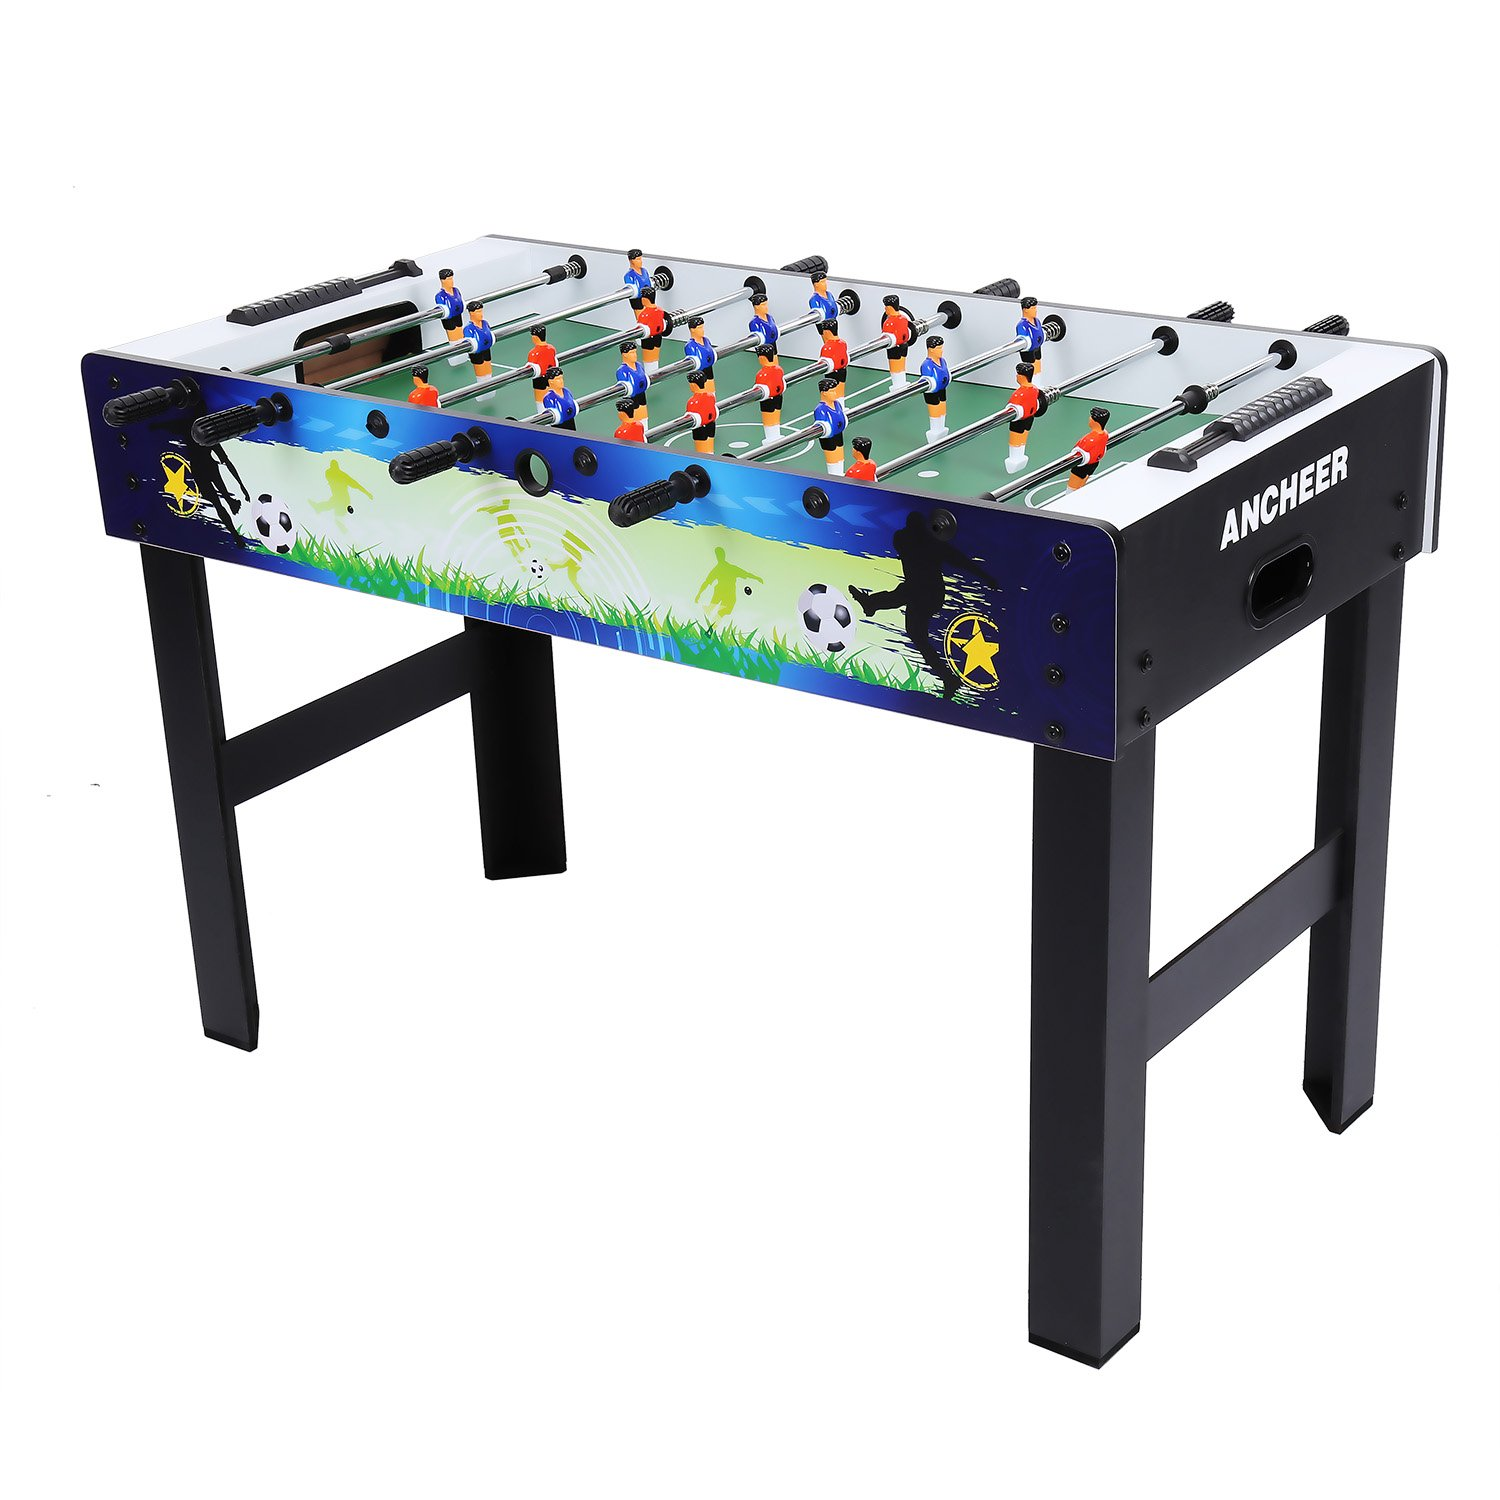 ANCHEER 48'' Foosball Table Soccer Table Arcade Game Room Football Table Sports Game for Kids& Adults- Indoor&Outdoor